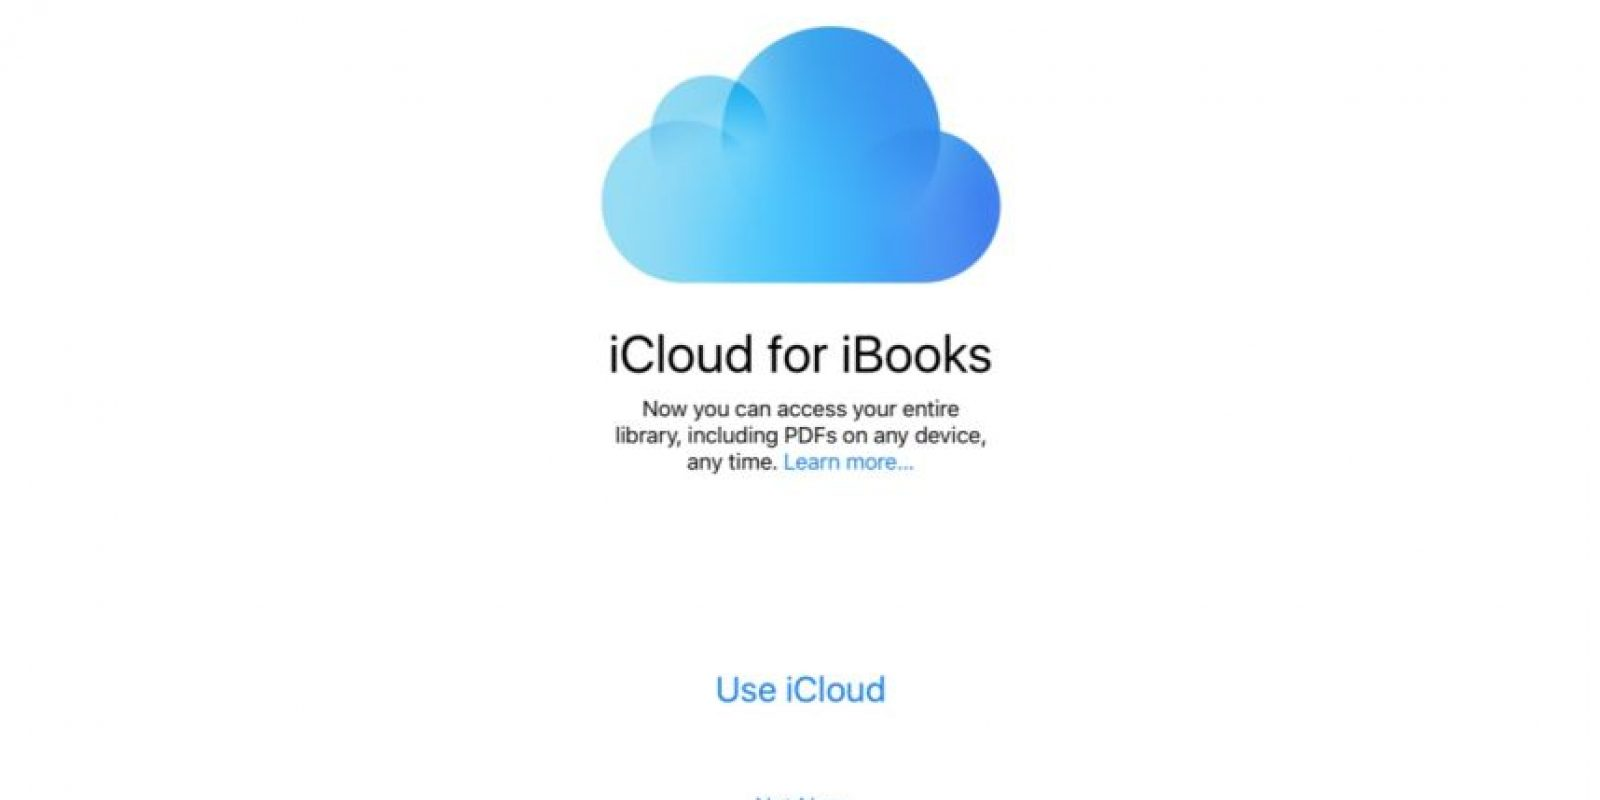 * Compatibilidad de PDF en iCloud for iBooks. Foto: vía 9to5Mac.com